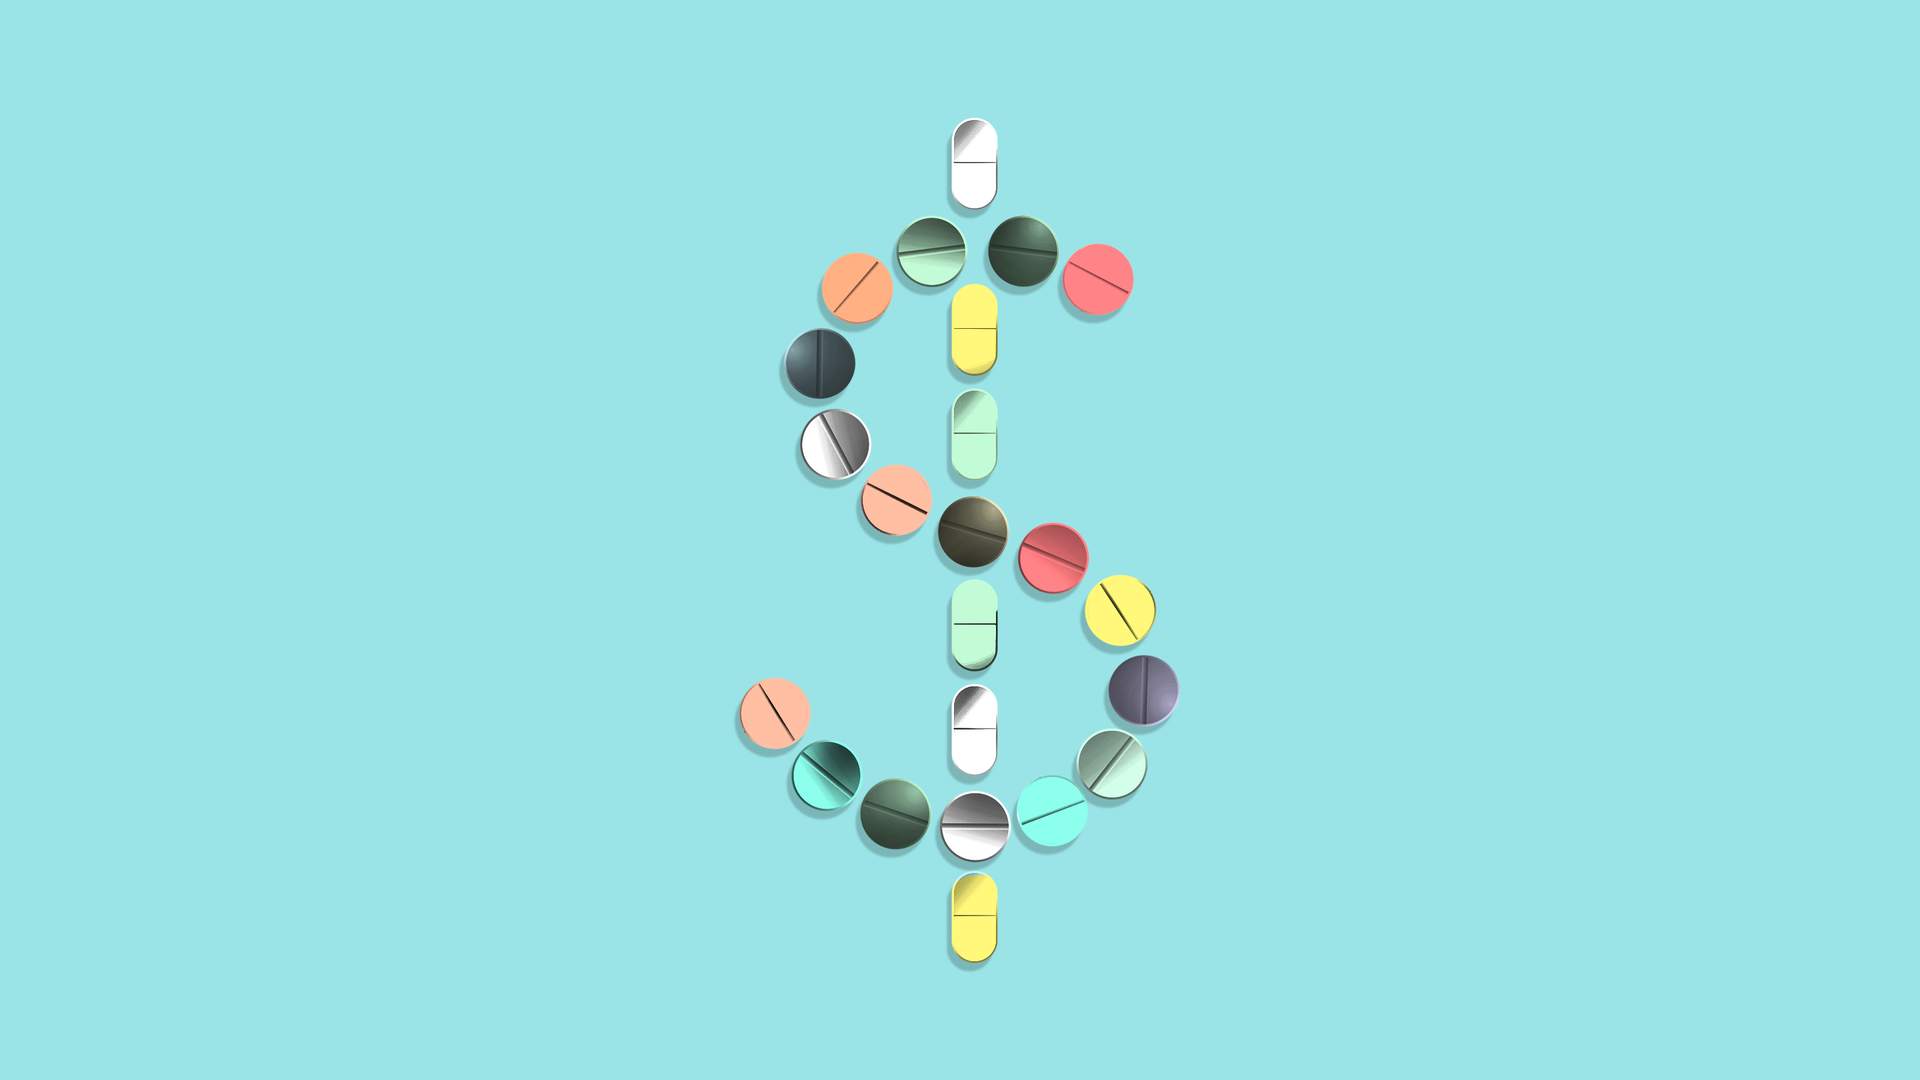 Illustration of pills in the shape of a money sign